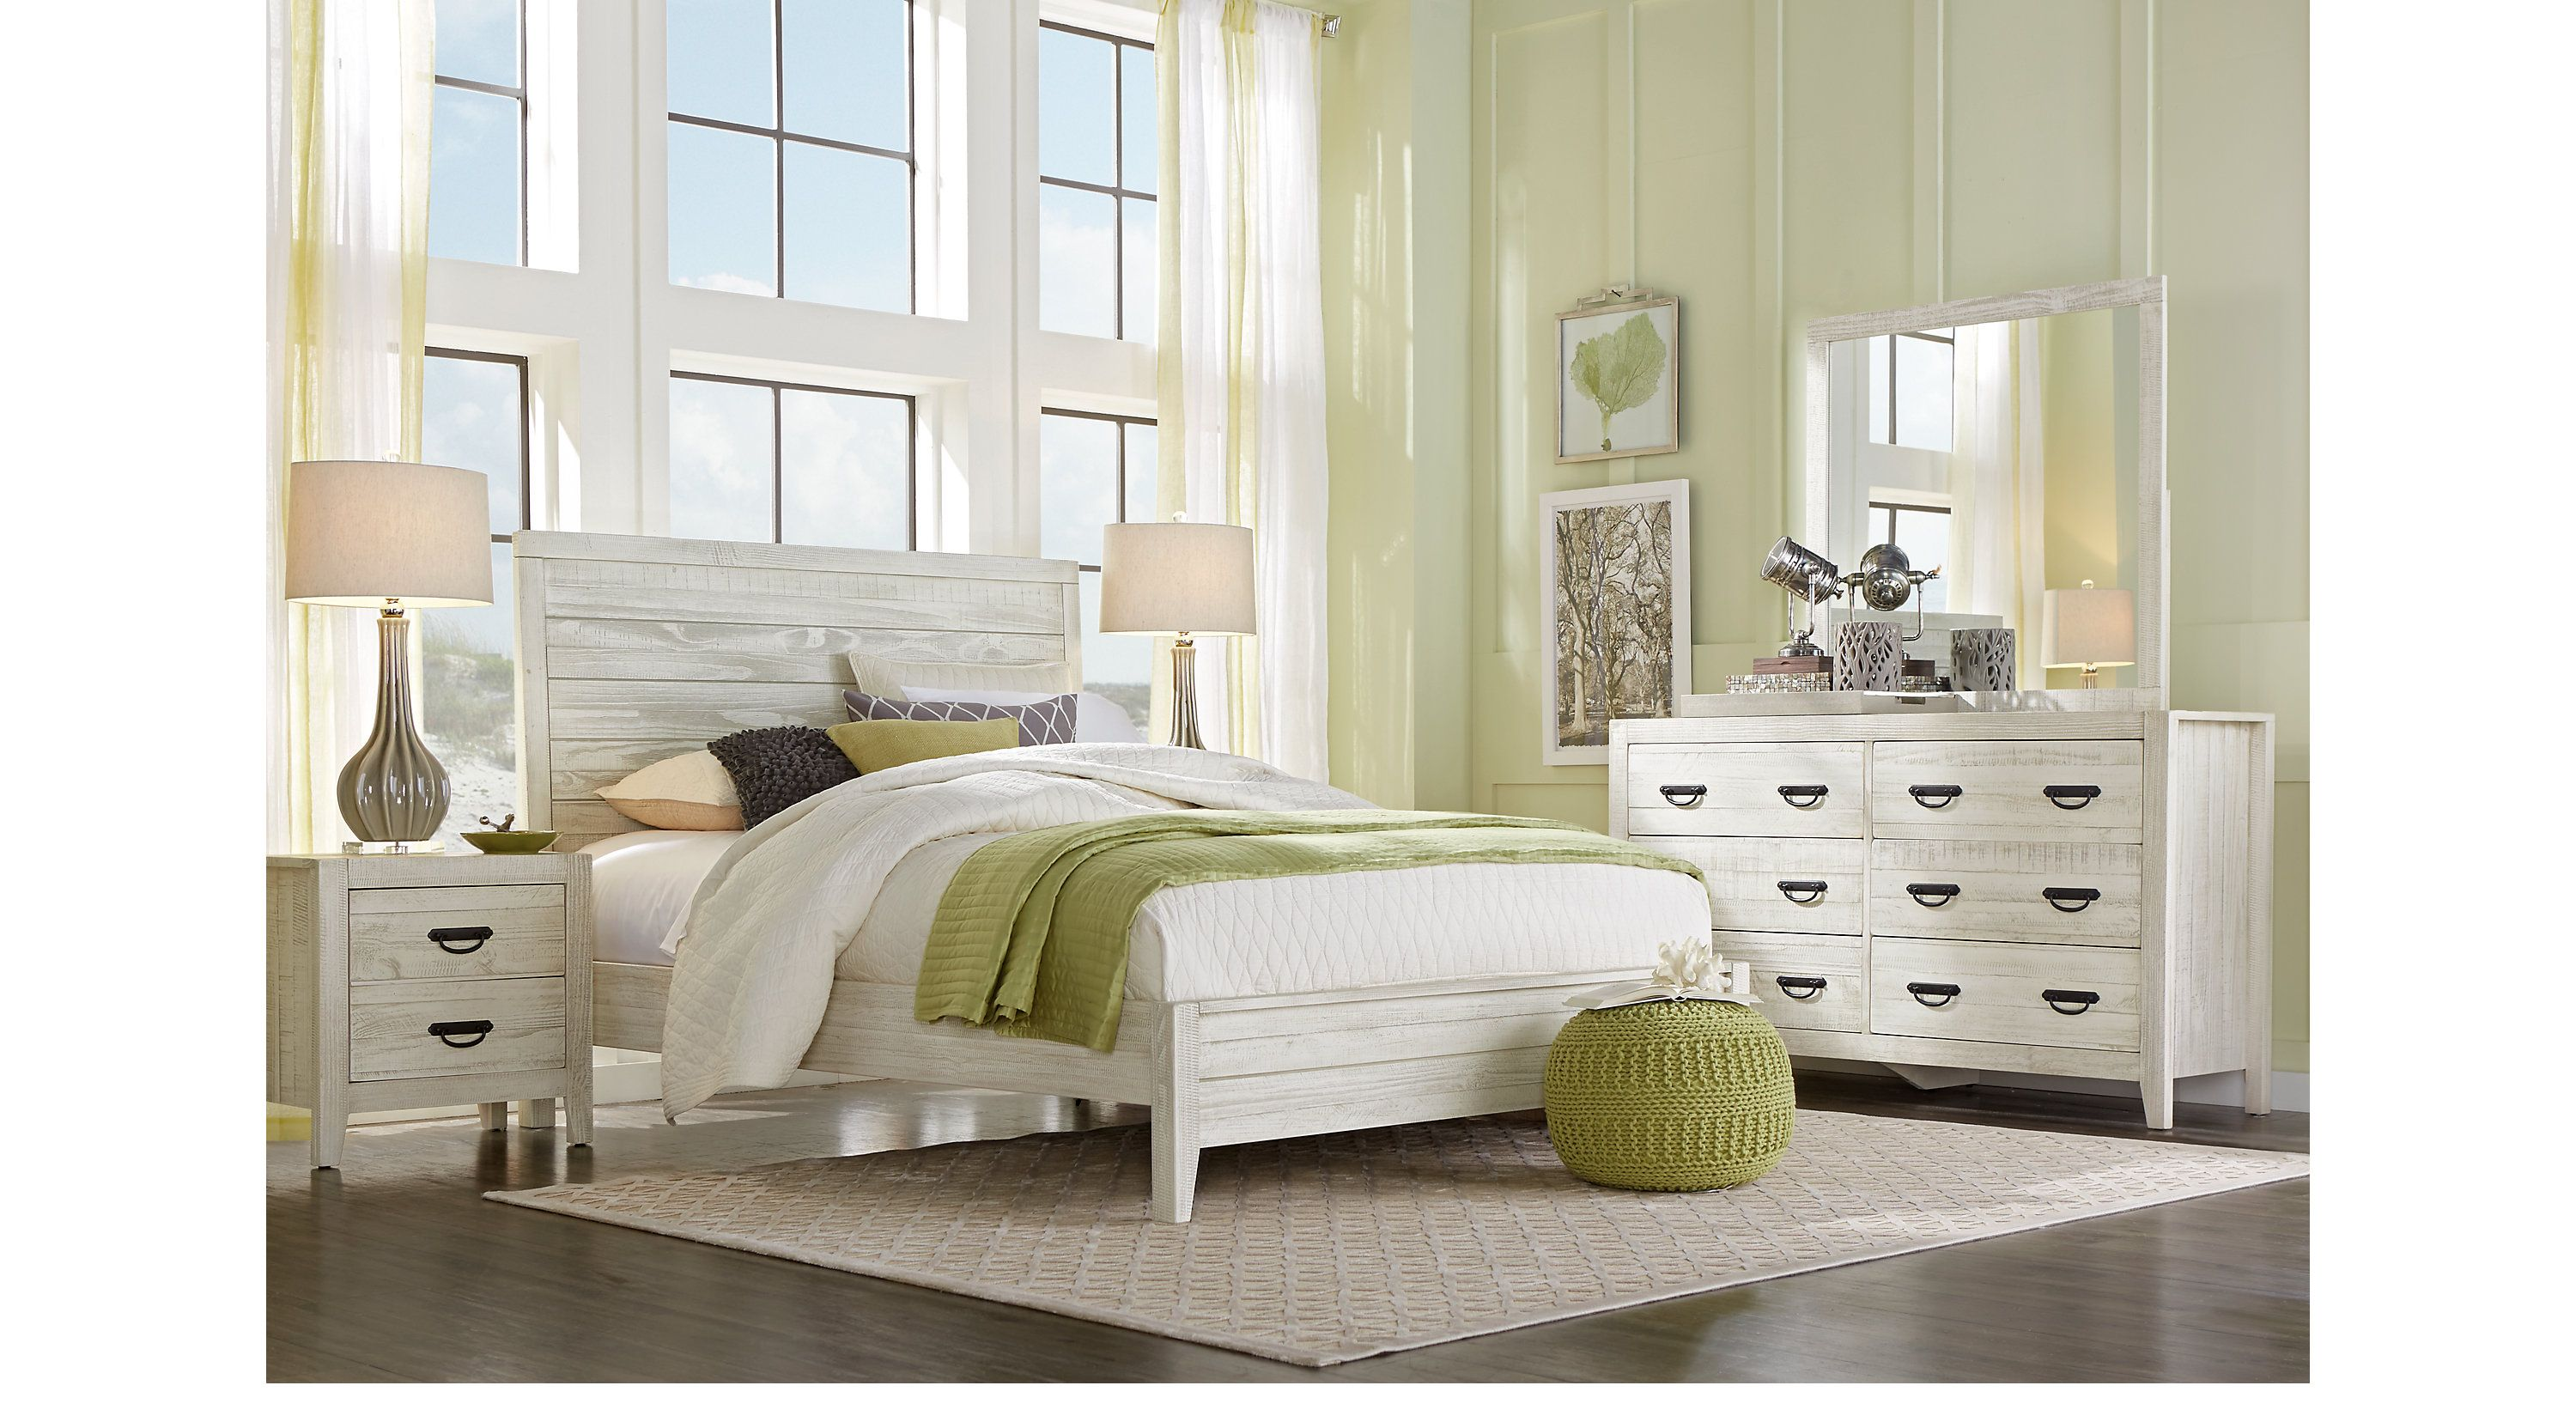 distressed furniture charm imagestc grey com bedroom white